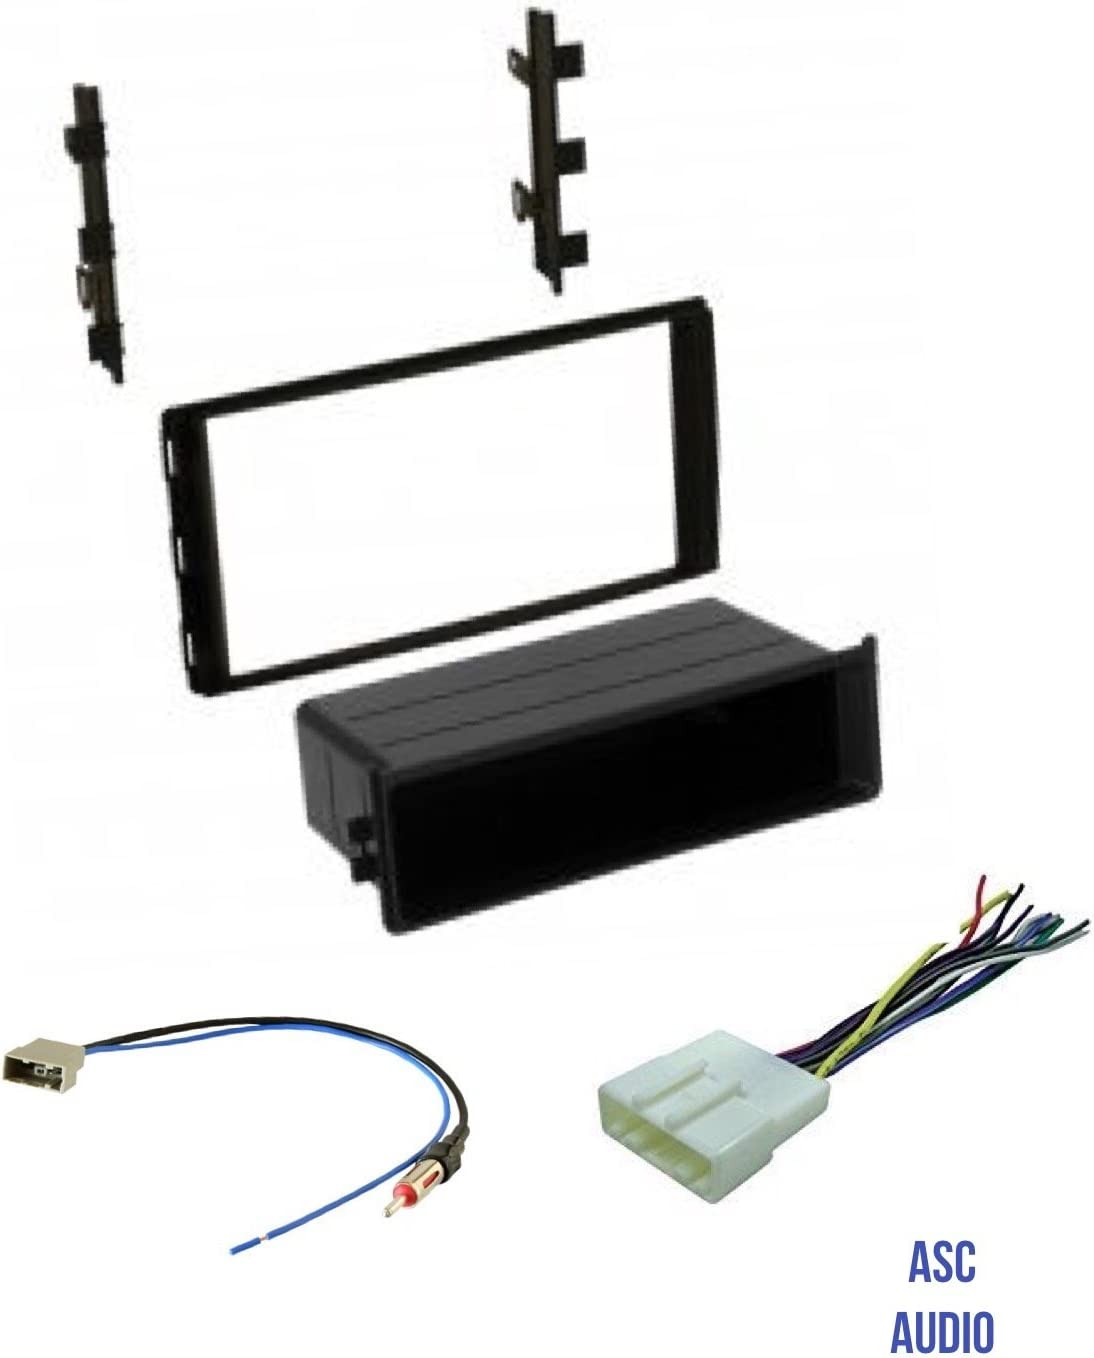 Amazon.com: Premium ASC Car Stereo Dash Install Kit, Wire Harness, and  Antenna Adapter to Install Aftermarket Radio for select Nissan Vehicles -  Compatible Vehicles Listed Below: Car ElectronicsAmazon.com